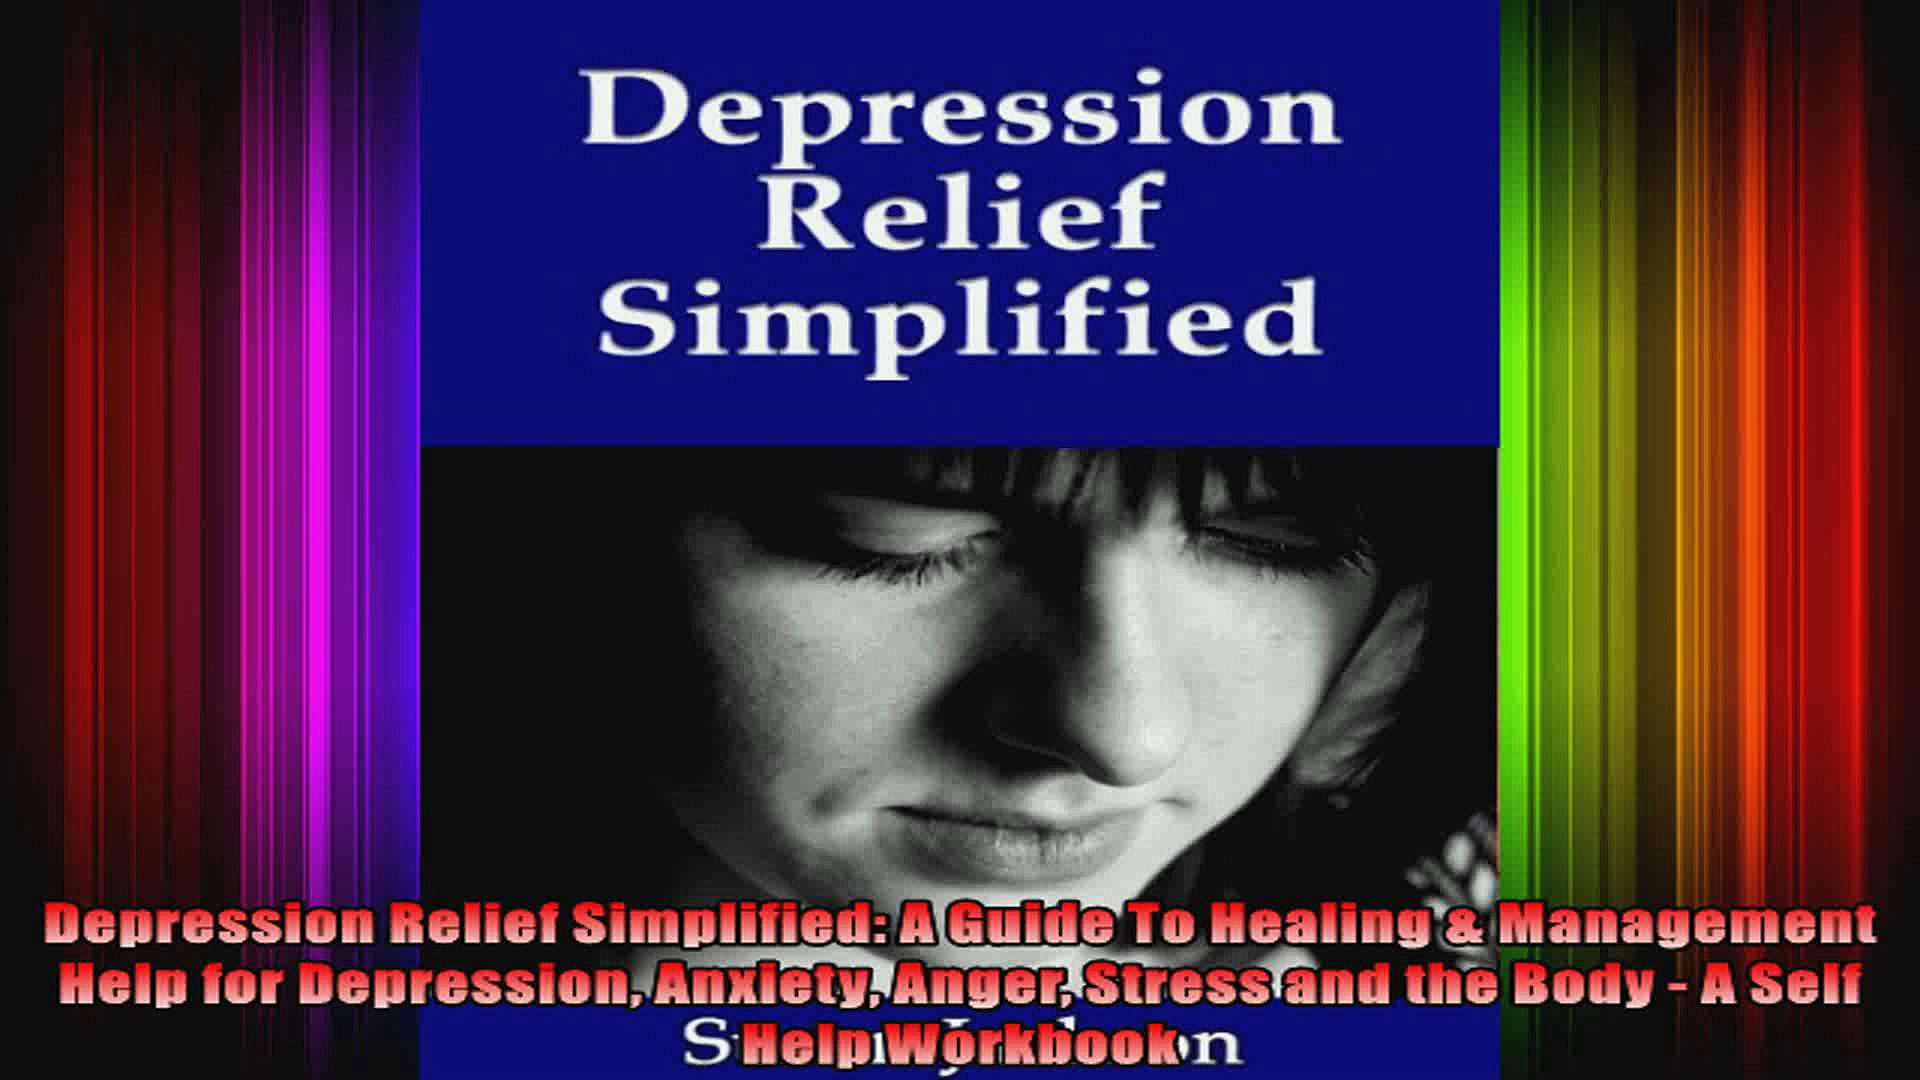 Depression Relief Simplified A Guide To Healing  Management Help for Depression Anxiety